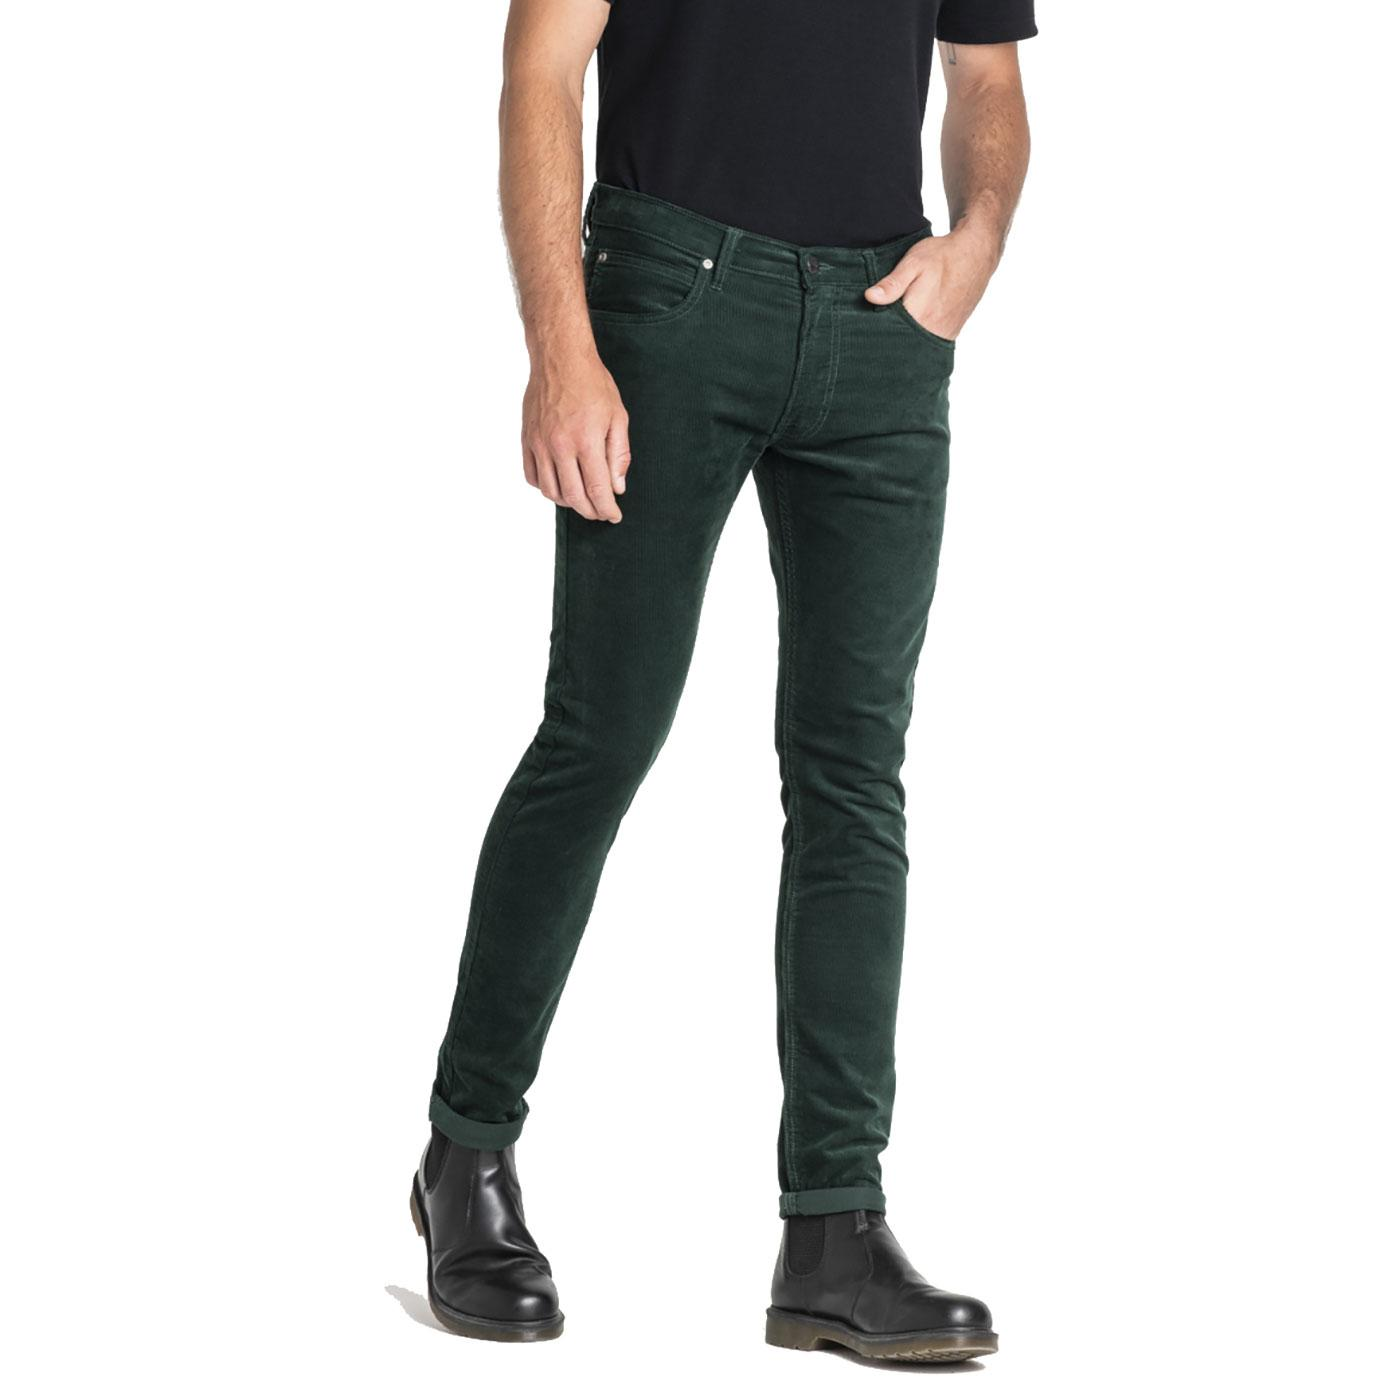 Luke LEE Retro Mod Slim Tapered Cord Jeans PG